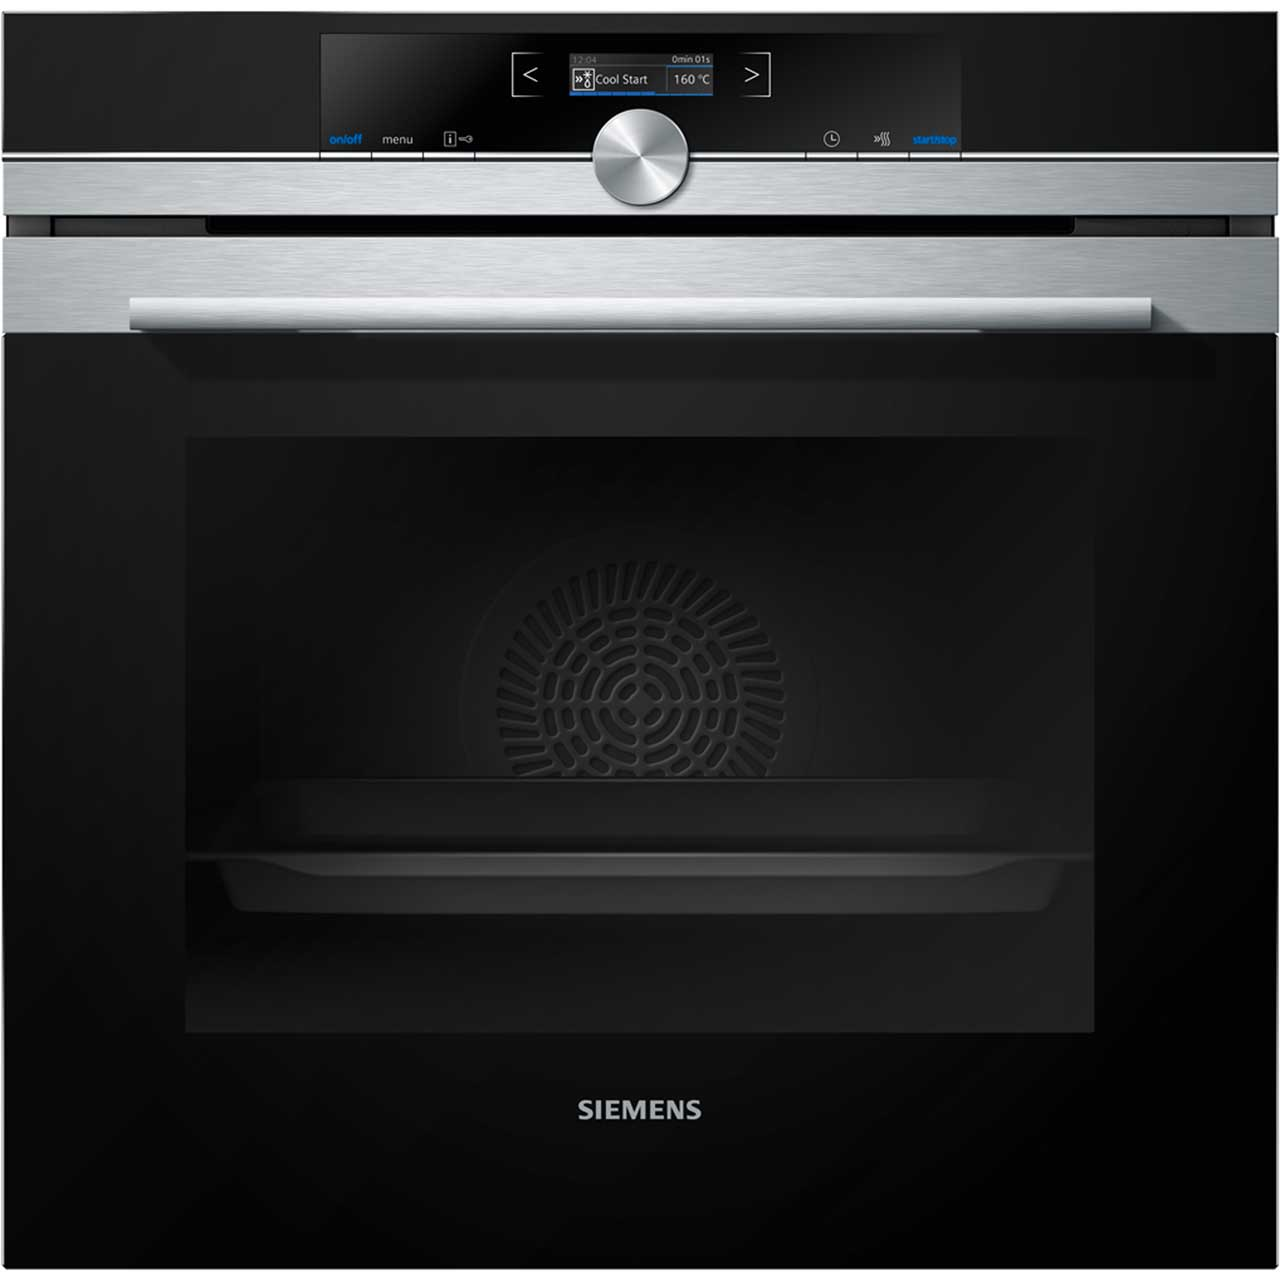 Charmant ... Siemens IQ 700 HB632GBS1B Built In Electric Single Oven   Stainless  Steel   A+ Rated ...